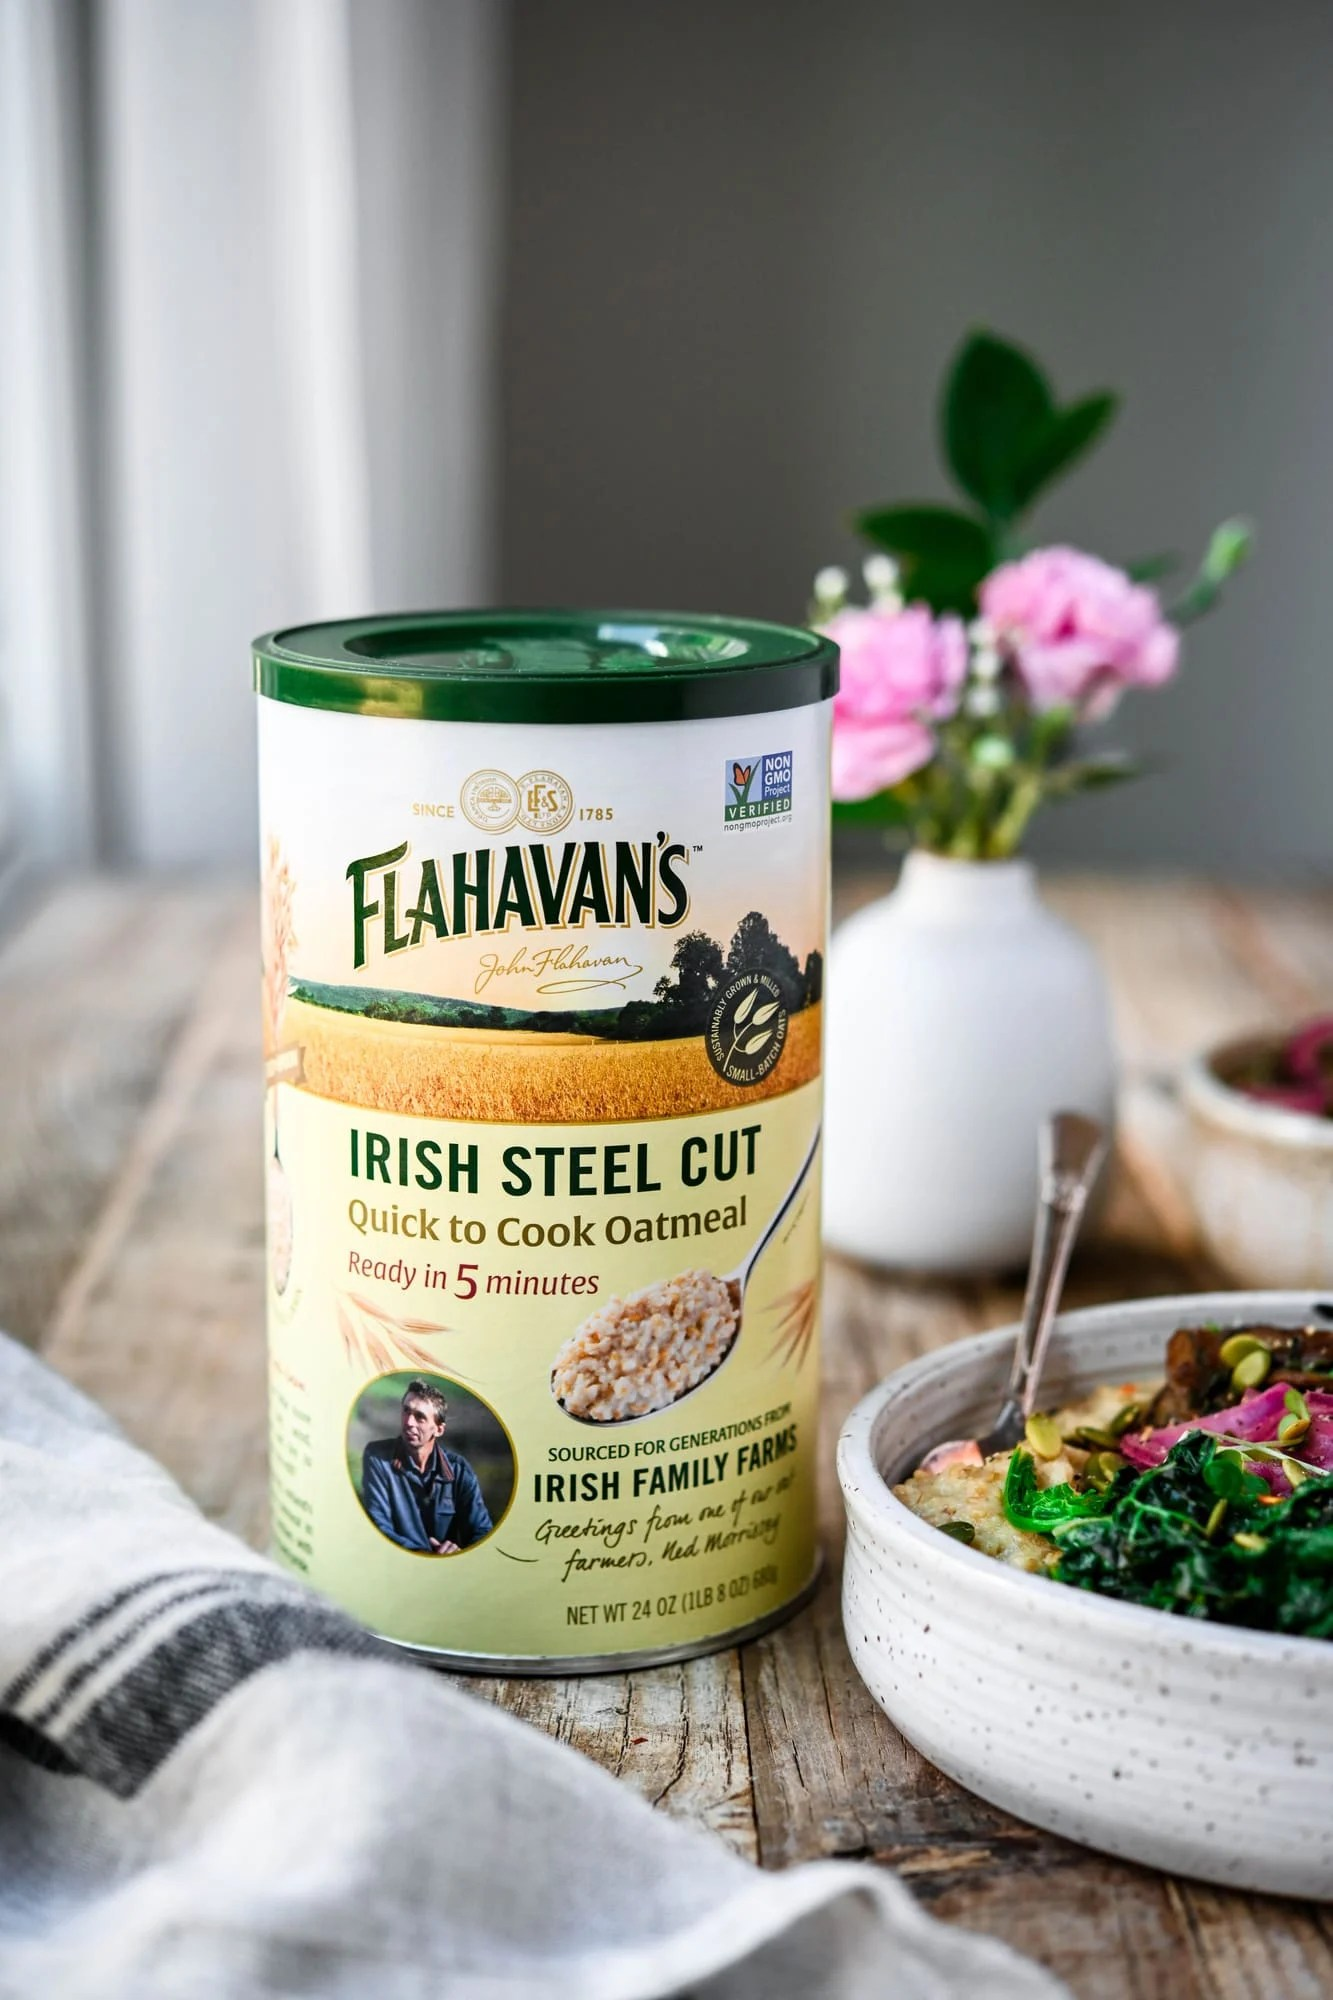 Side view of container of Flahavan's Irish Steel Cut Oatmeal on wood table